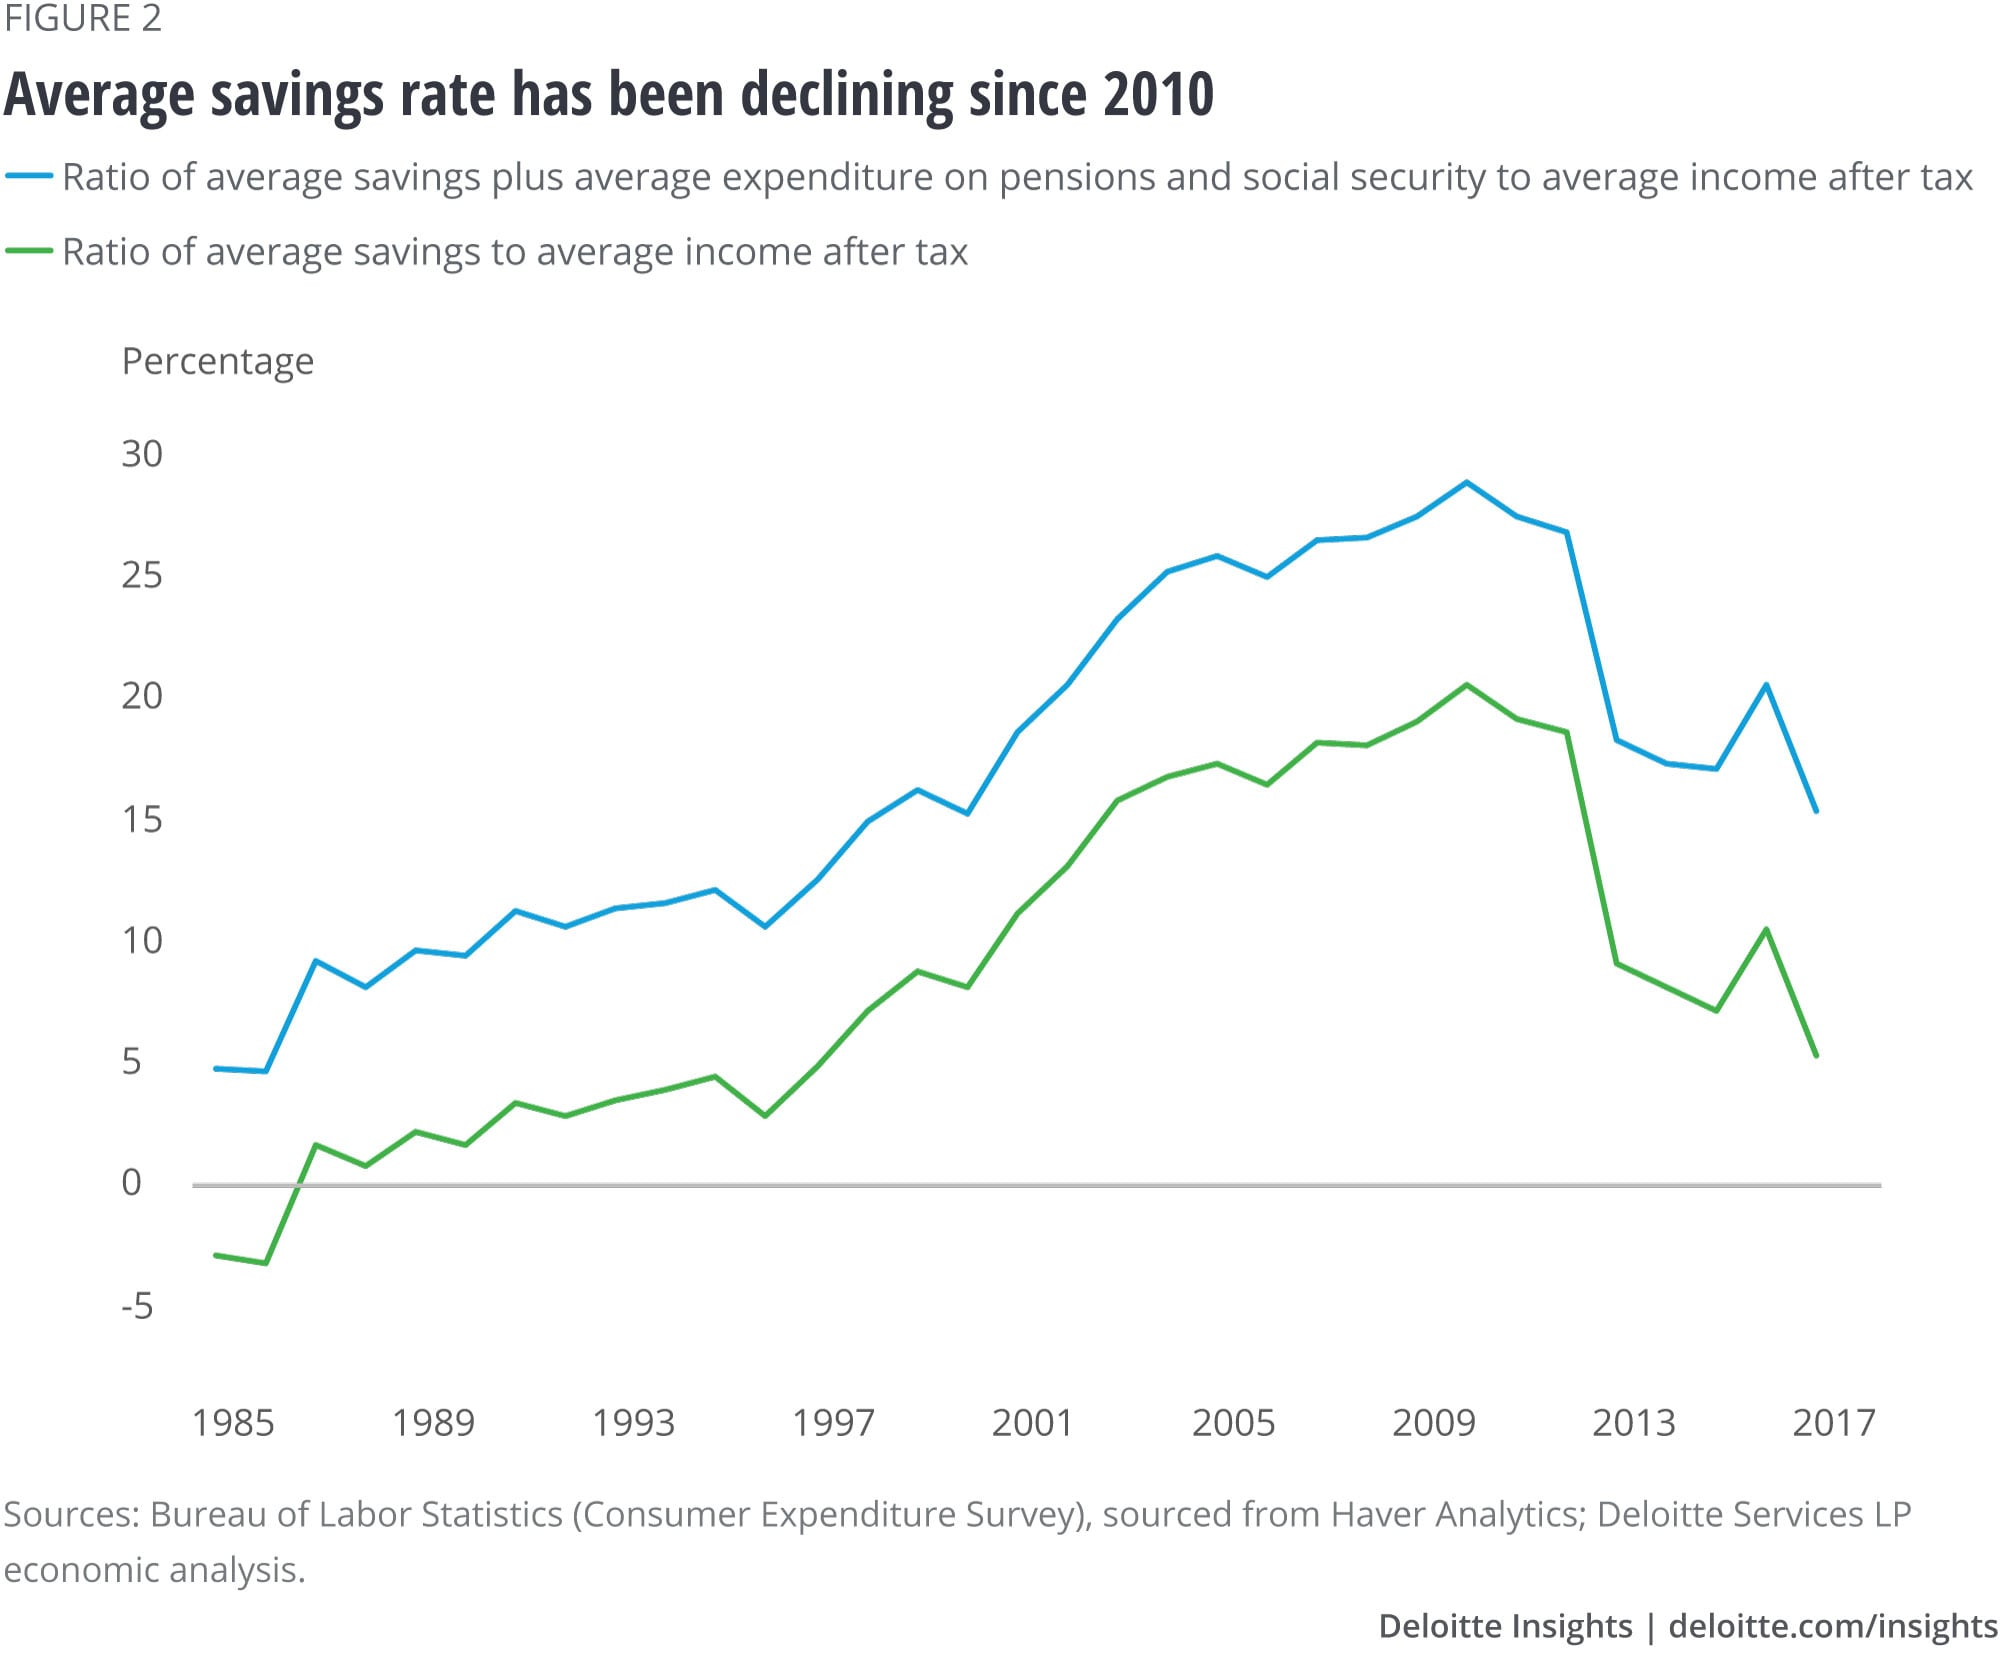 Average savings has been going down since 2010